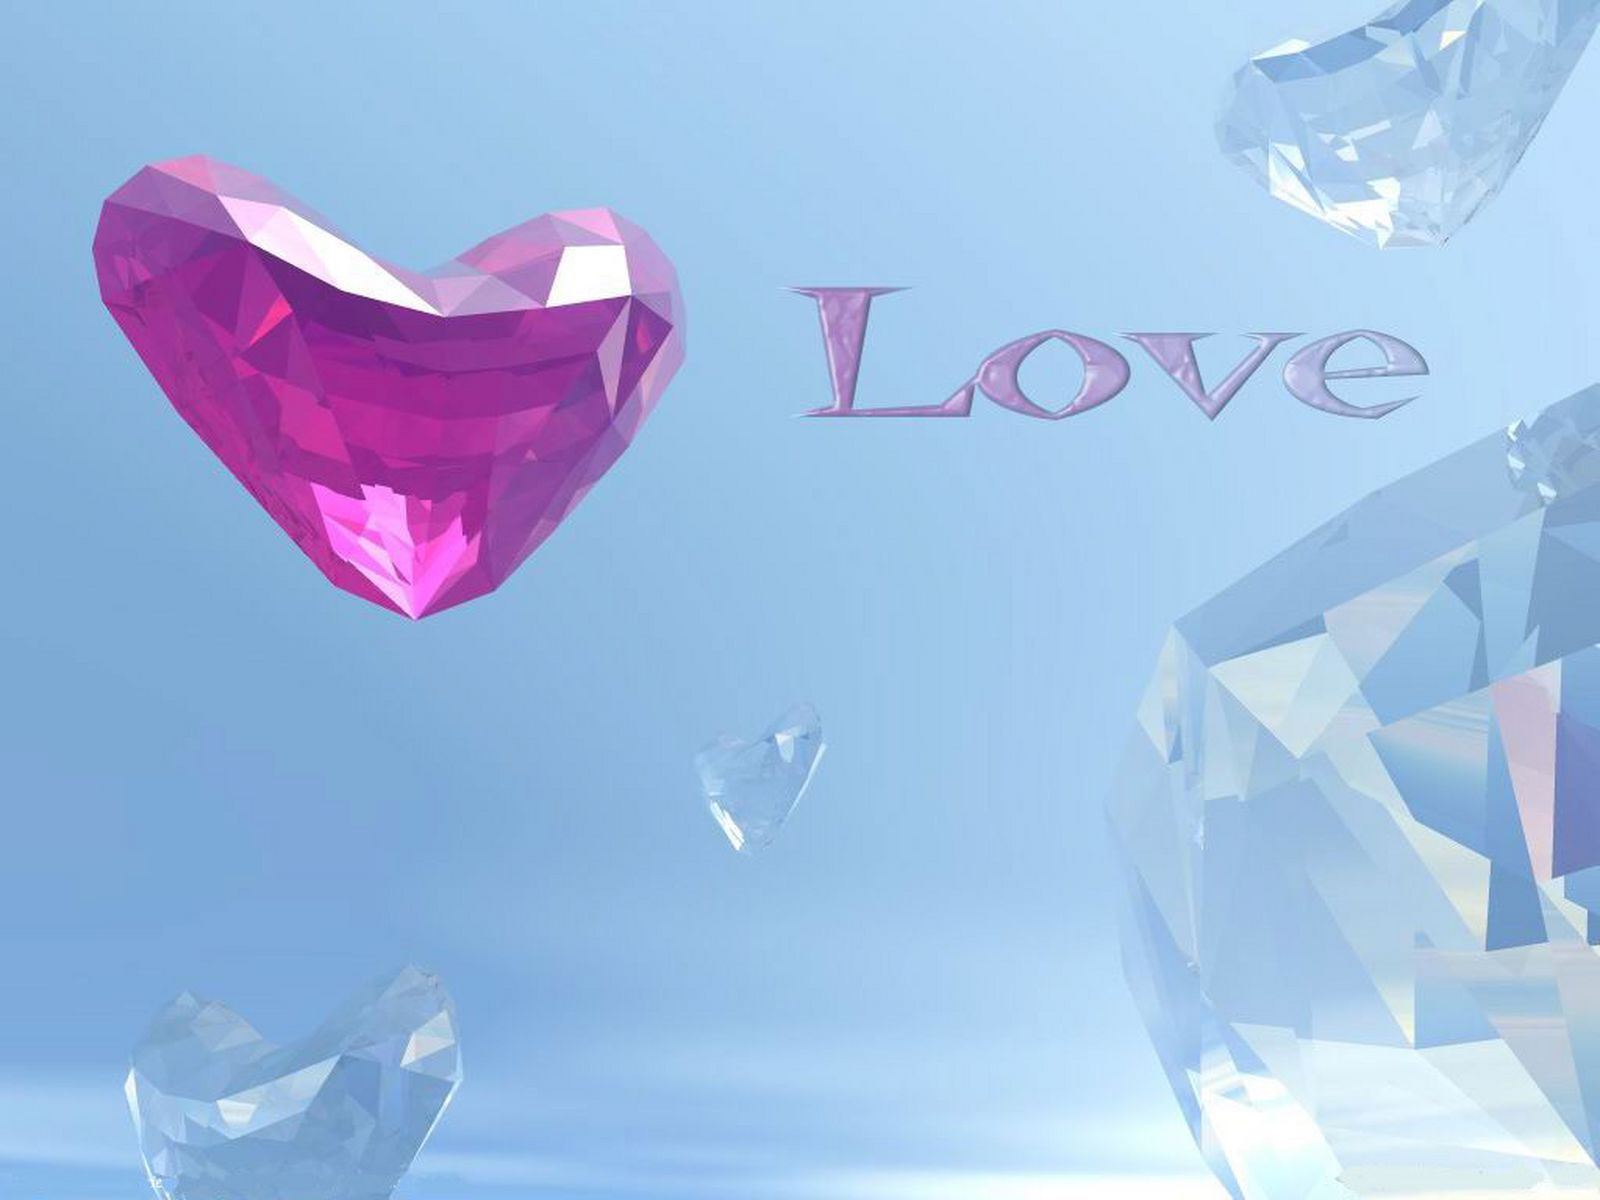 Love Y Wallpapers : Mazapoint: Love Wallpapers